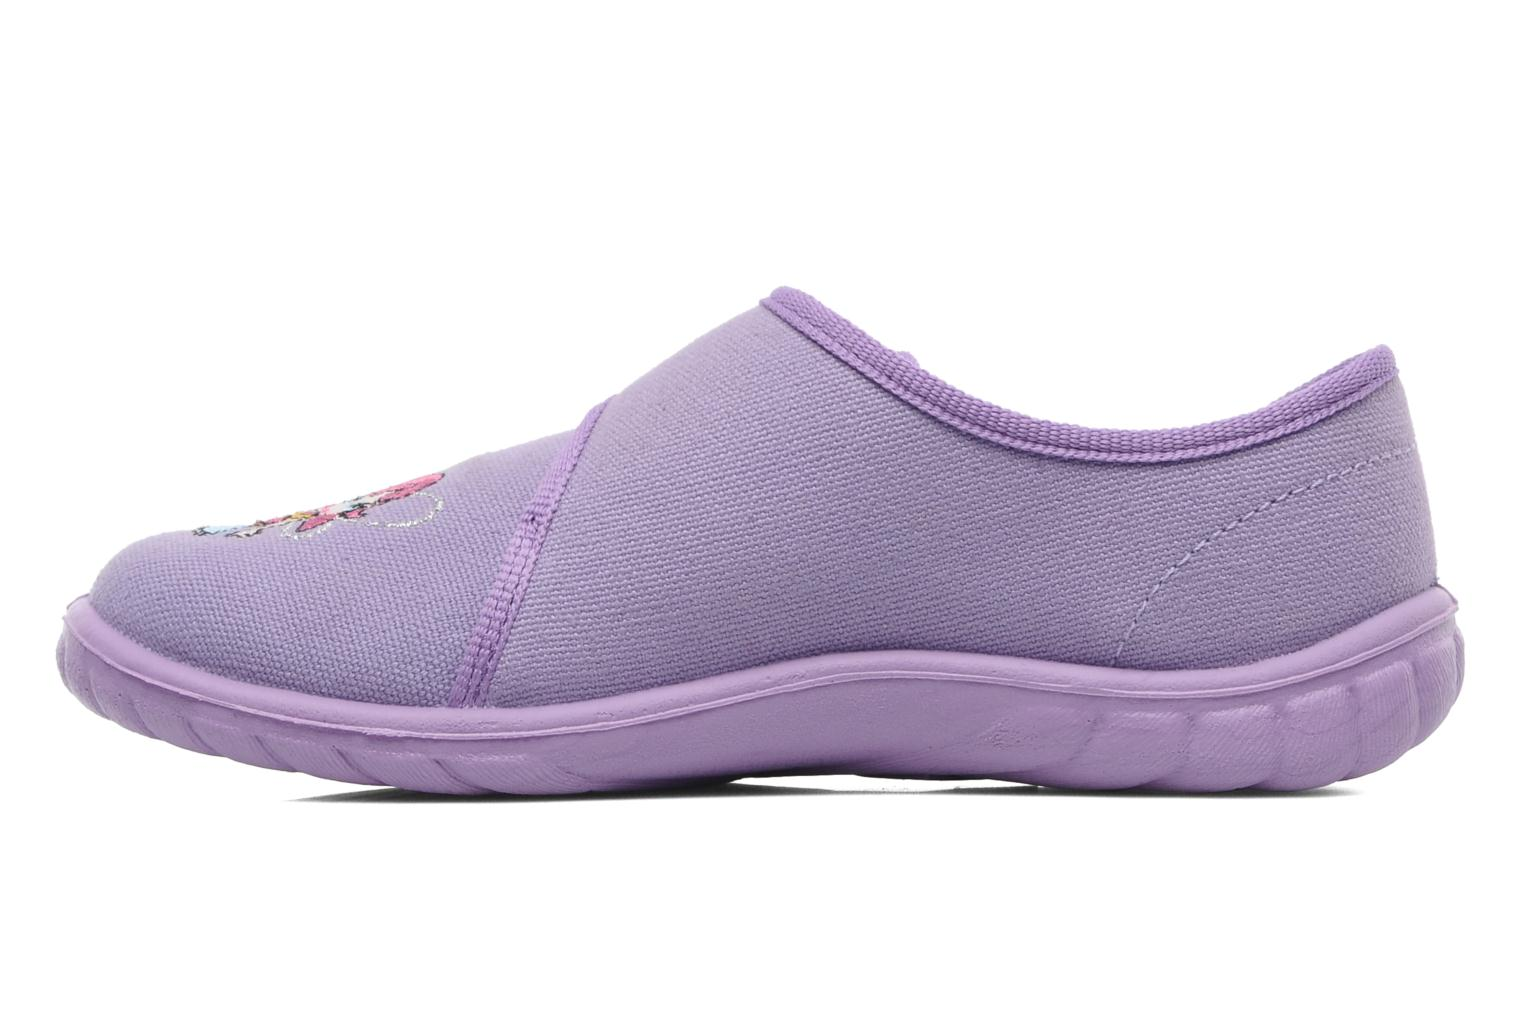 Chaussons Giesswein Farven Violet vue face